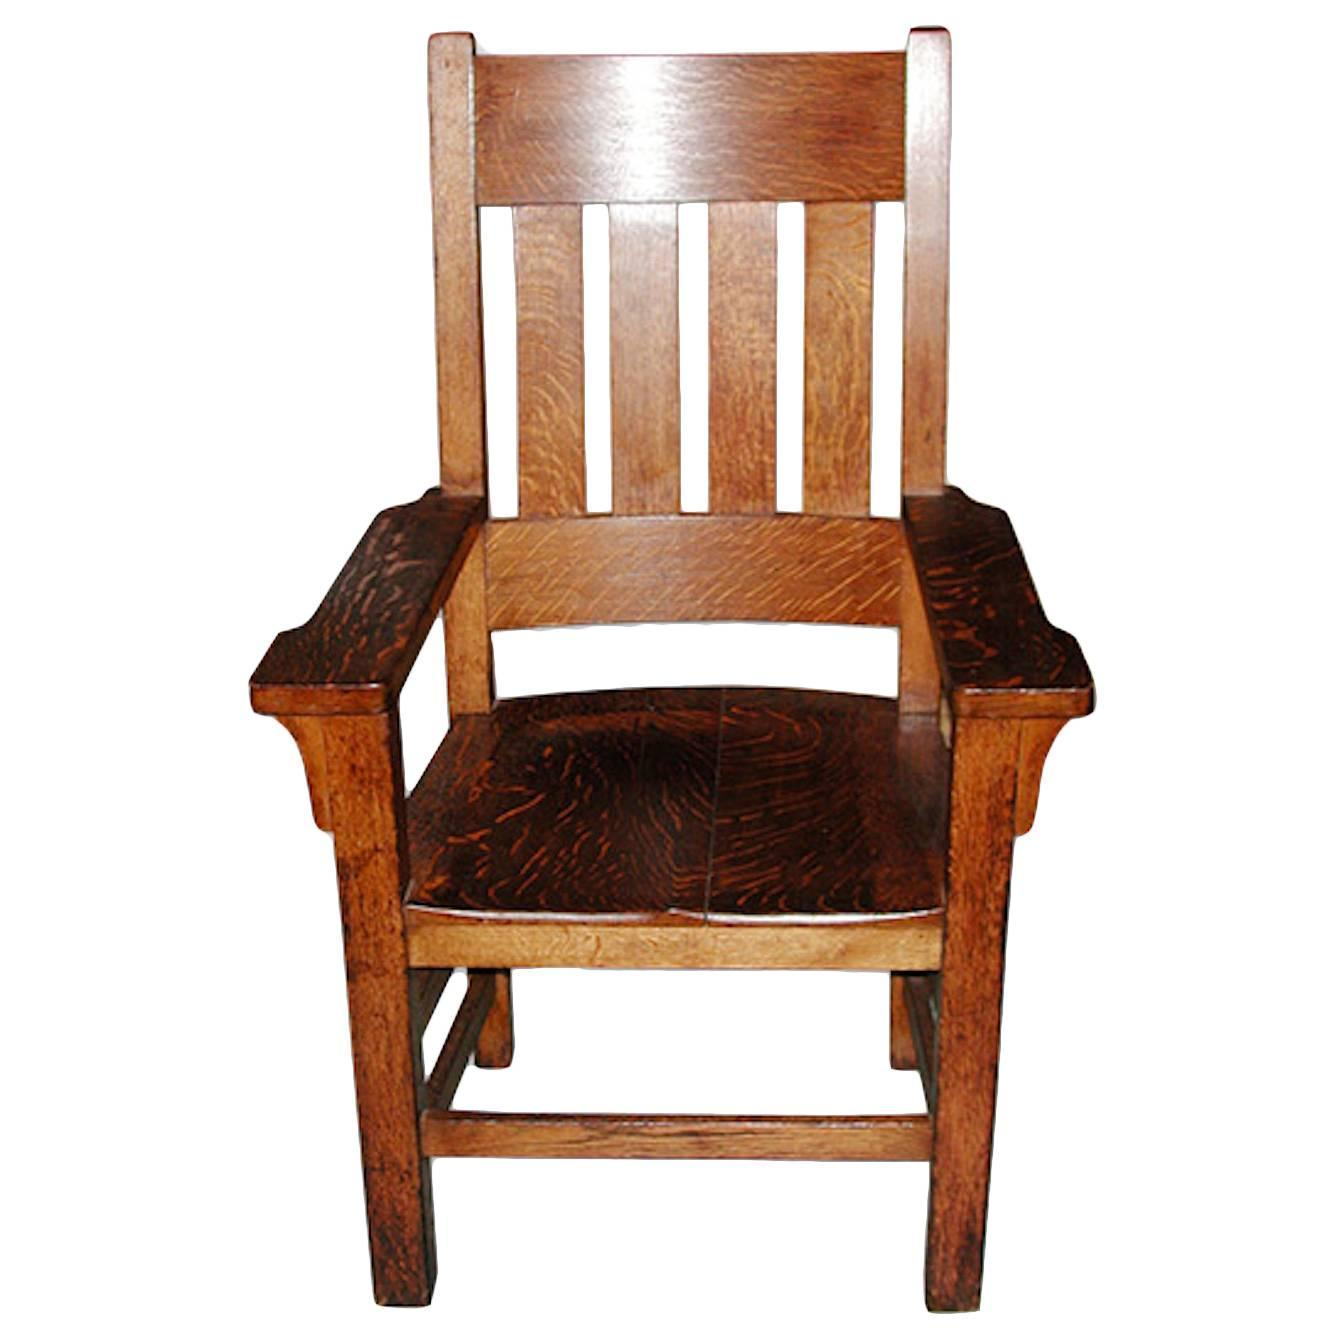 20th Century American Furniture Identification: American Early 1920s Cottage Armchair For Sale At 1stdibs